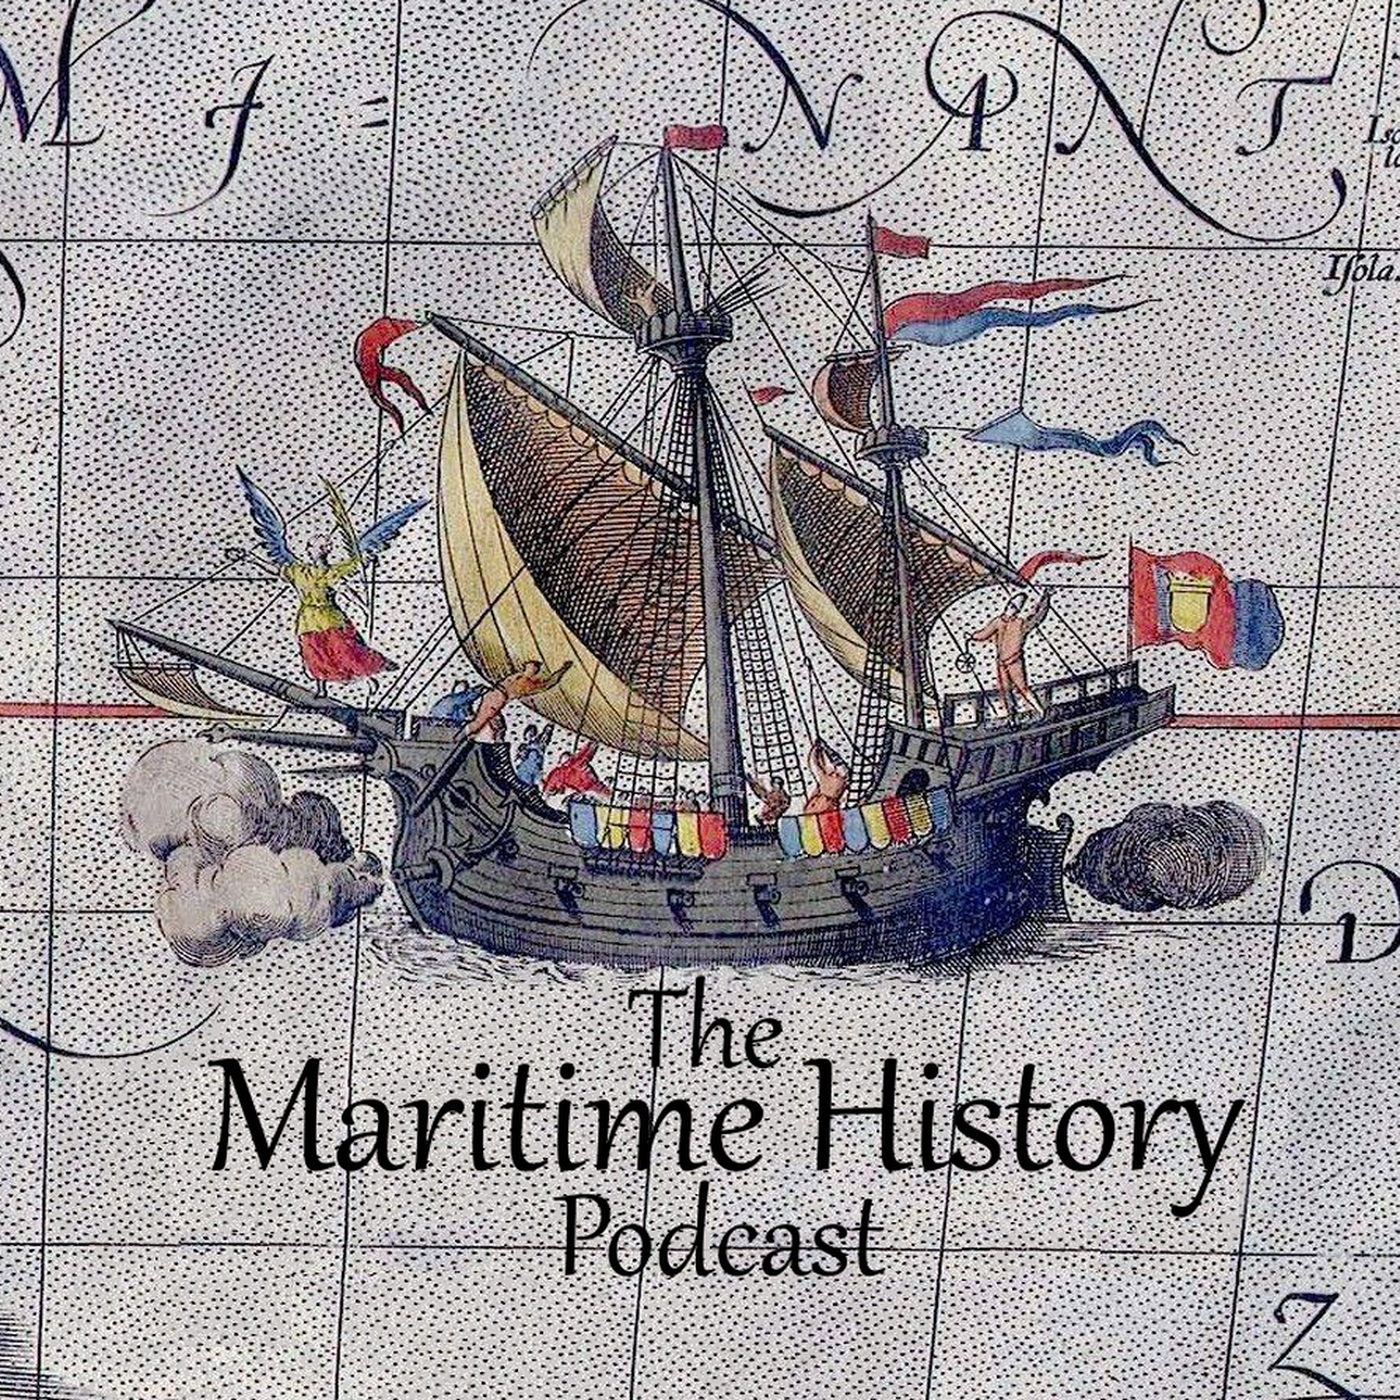 037 - The Naval Battle of Artemisium - Part II